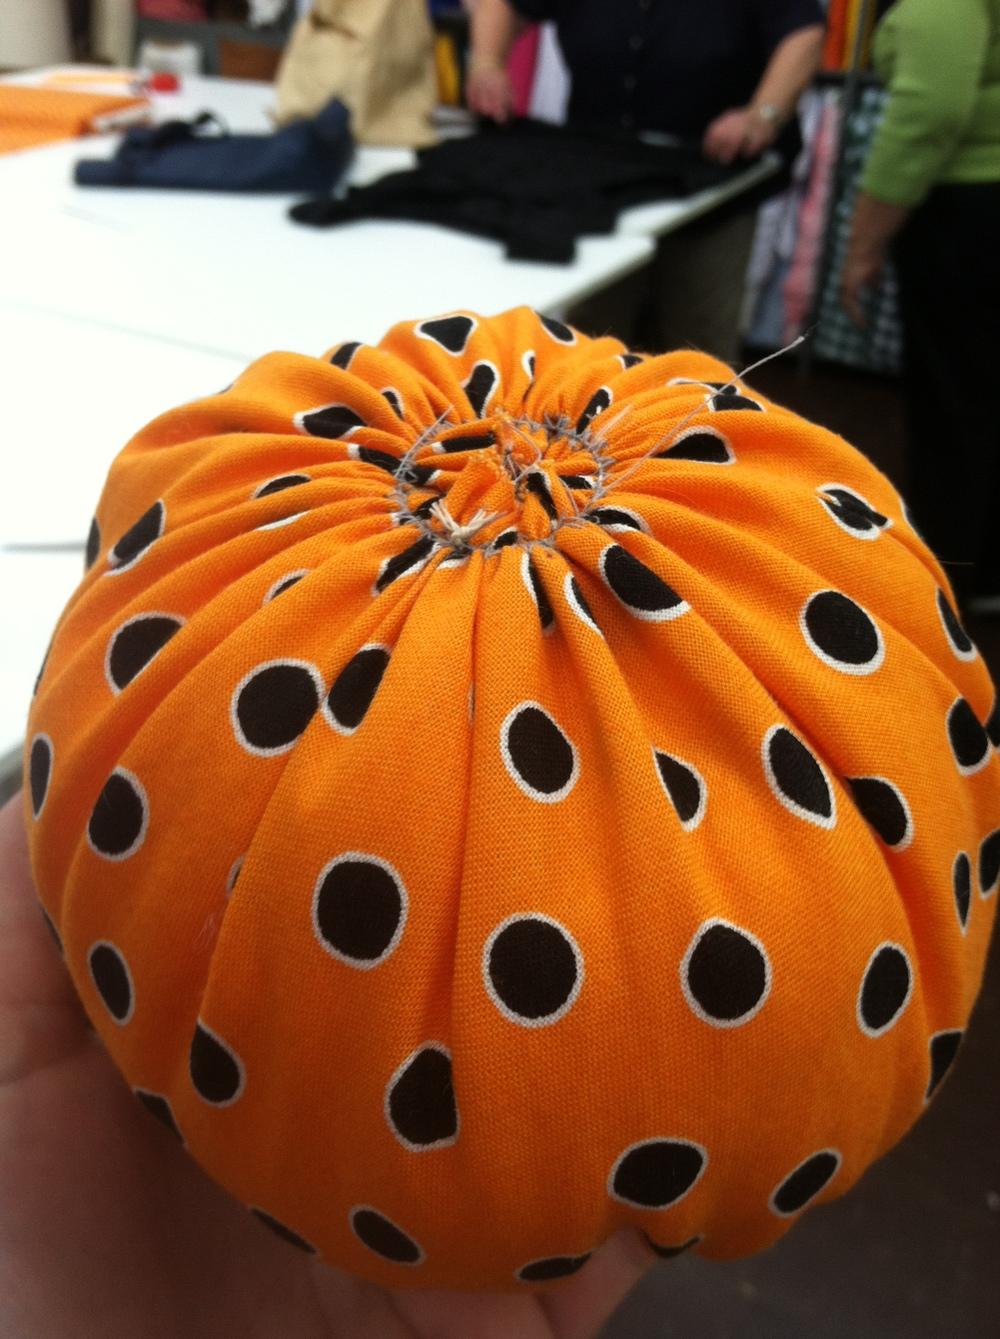 Look at how the bias of that fabric just folds so beautifully and really looks like the lines of a pumpkin!